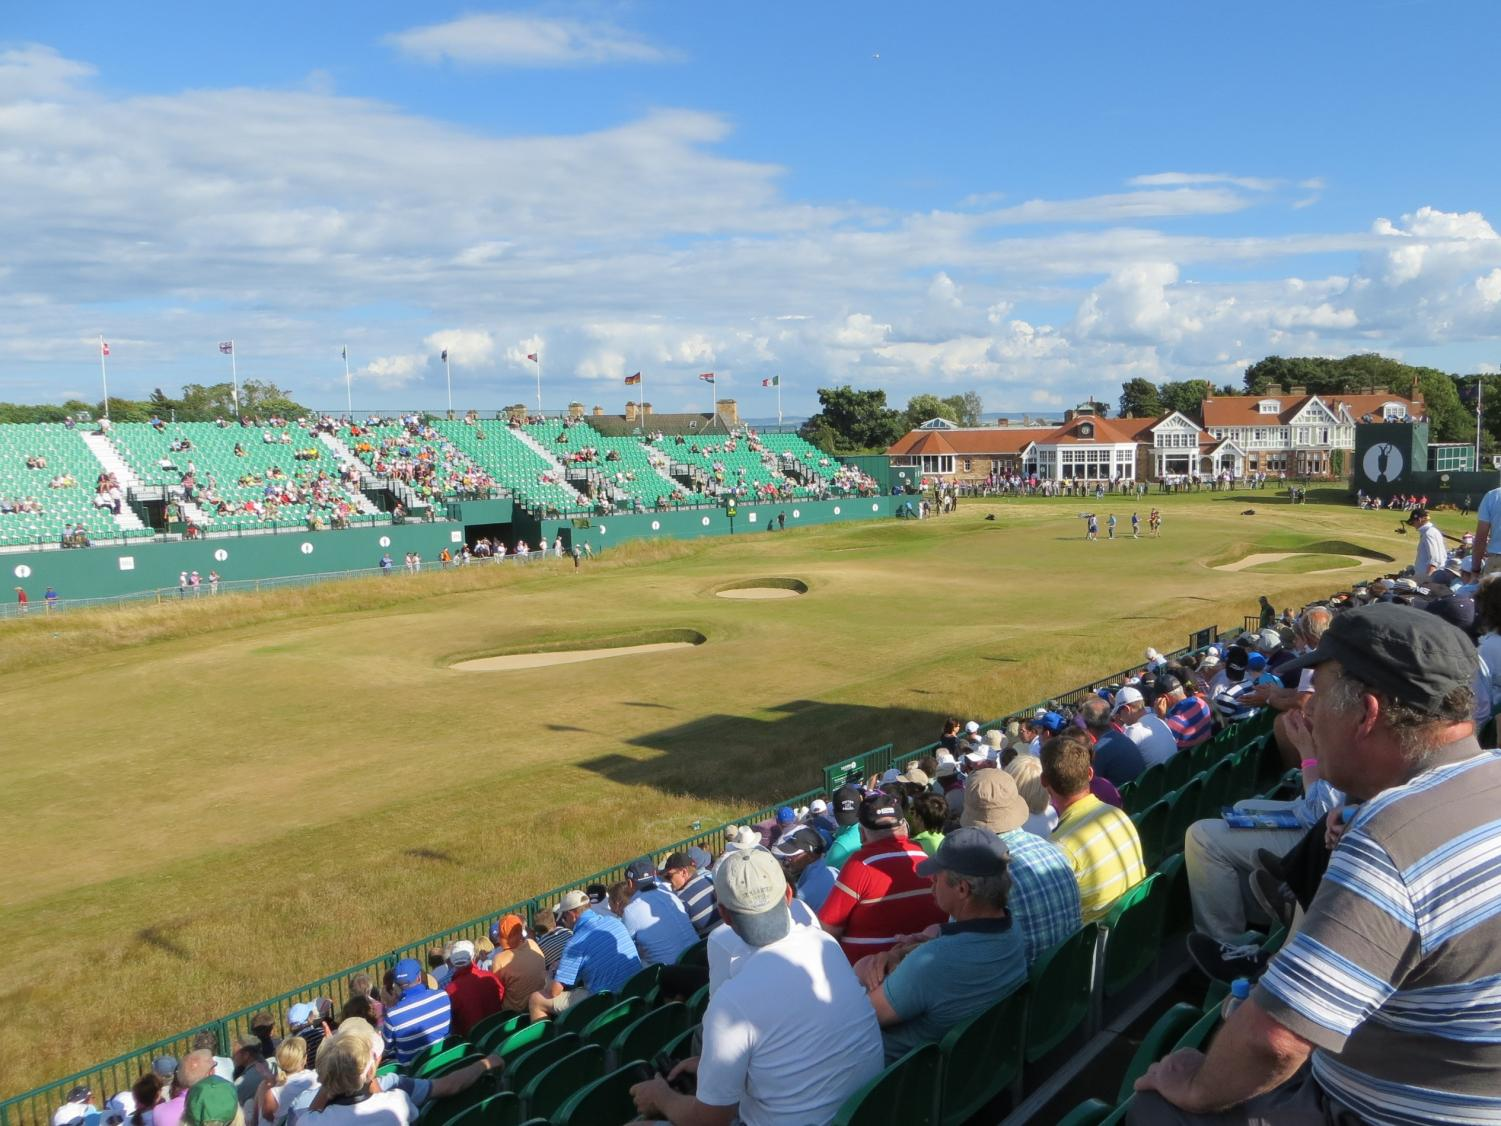 Seen here is Muirfield gold course on the 18th hole of the 2013 Open tournament.